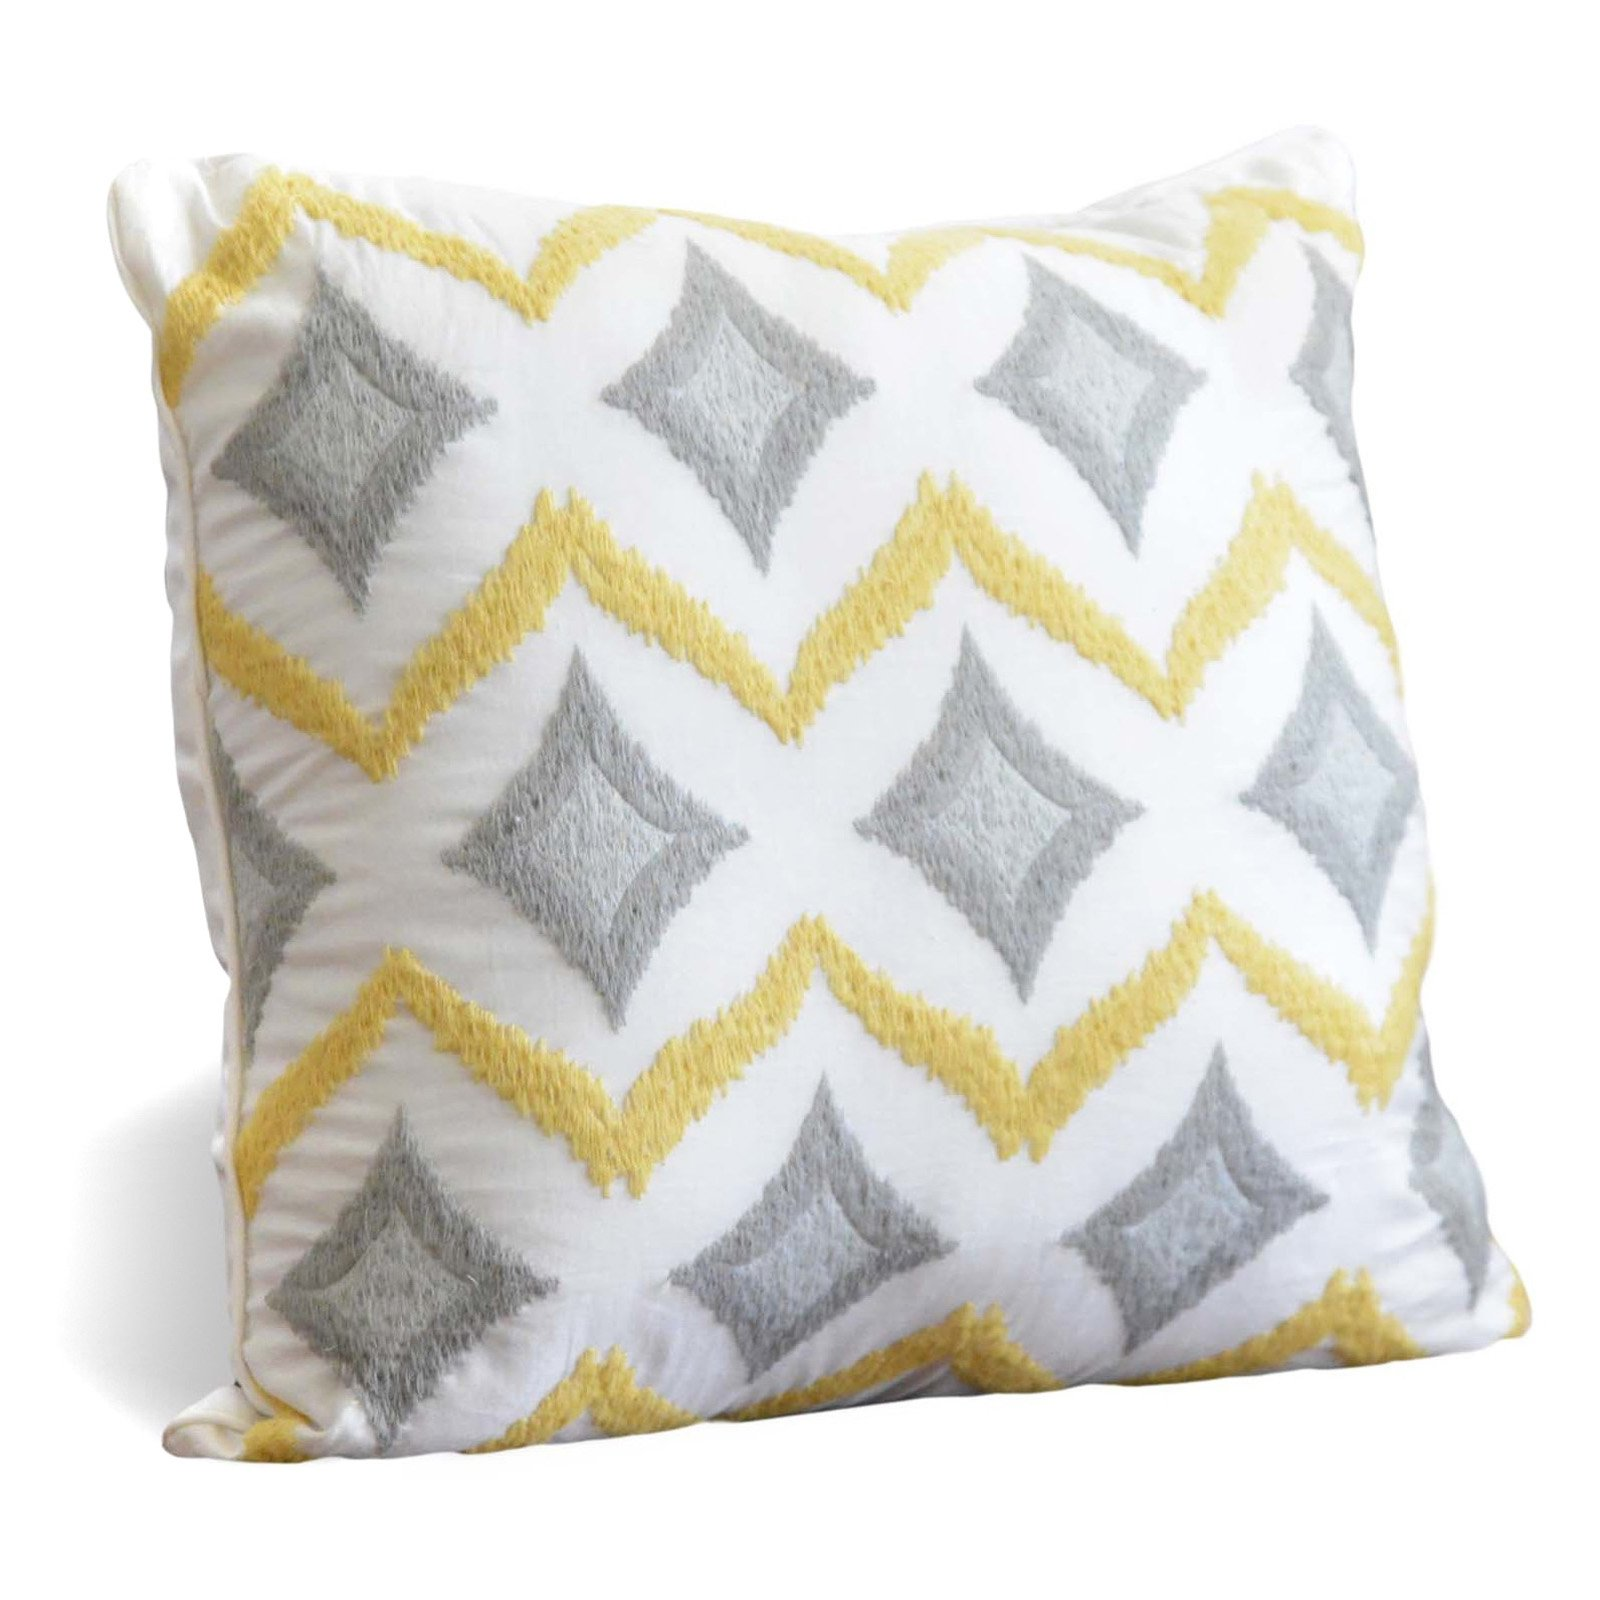 Piper Square Decorative Throw Pillow by Nostalgia Home